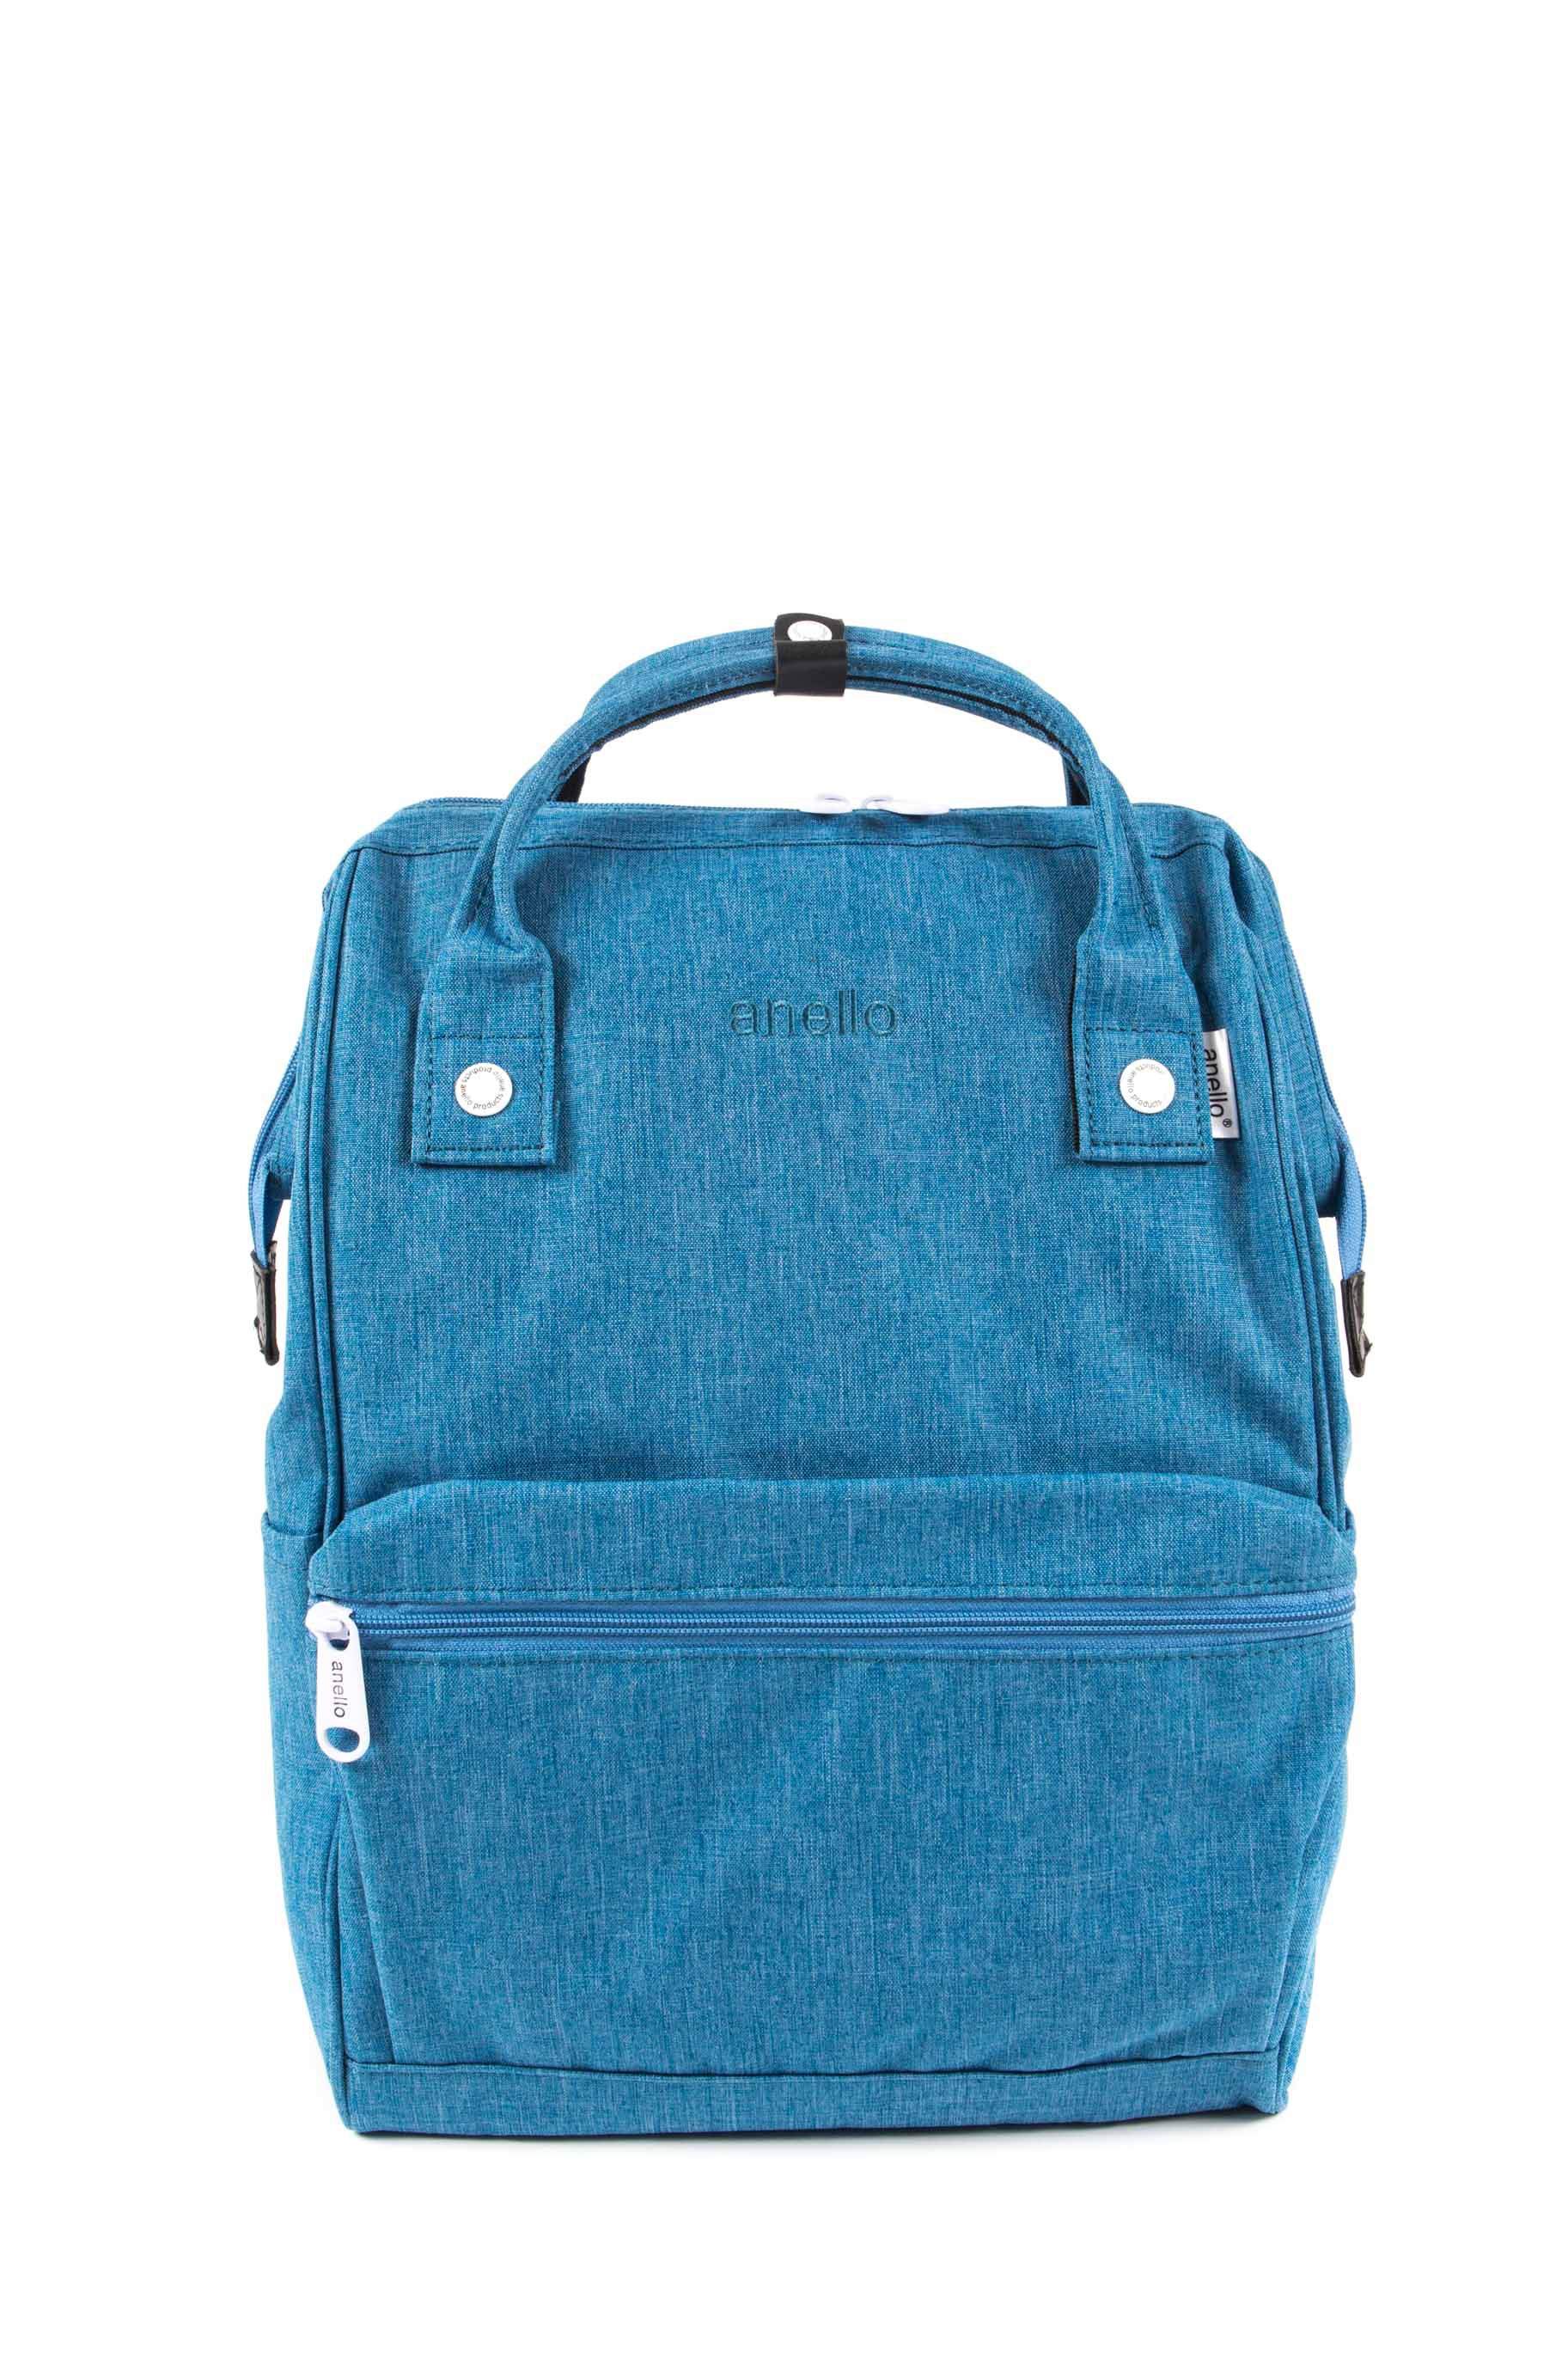 73e1a2892e96 Anello Mottled Polyester Canvas BackPack - Cerulean — The Lifestyle ...